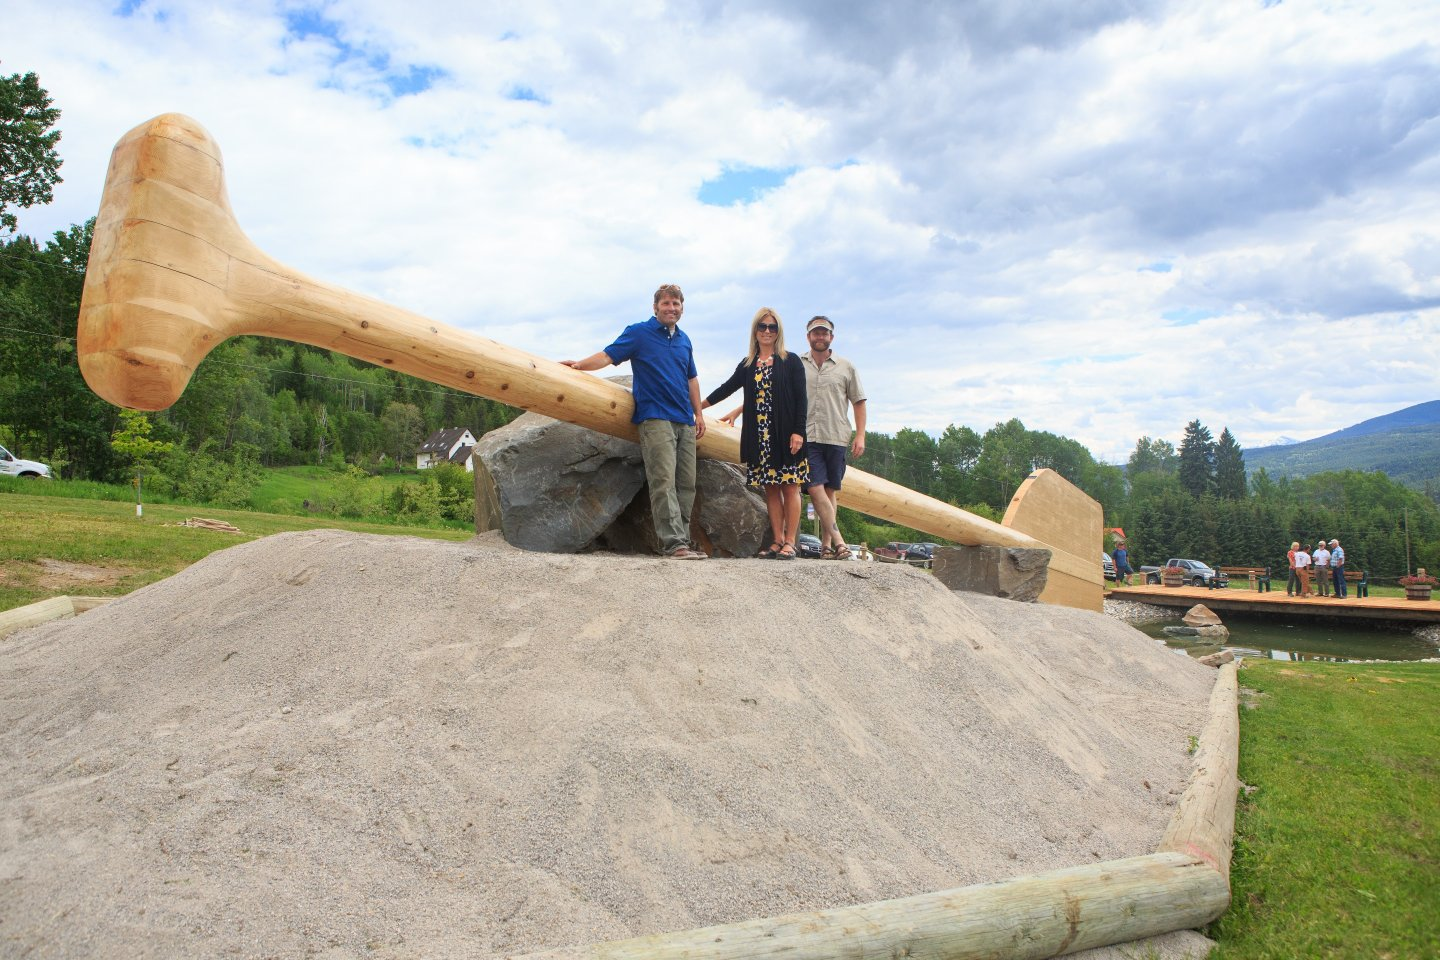 golden bc, largest paddle, world record